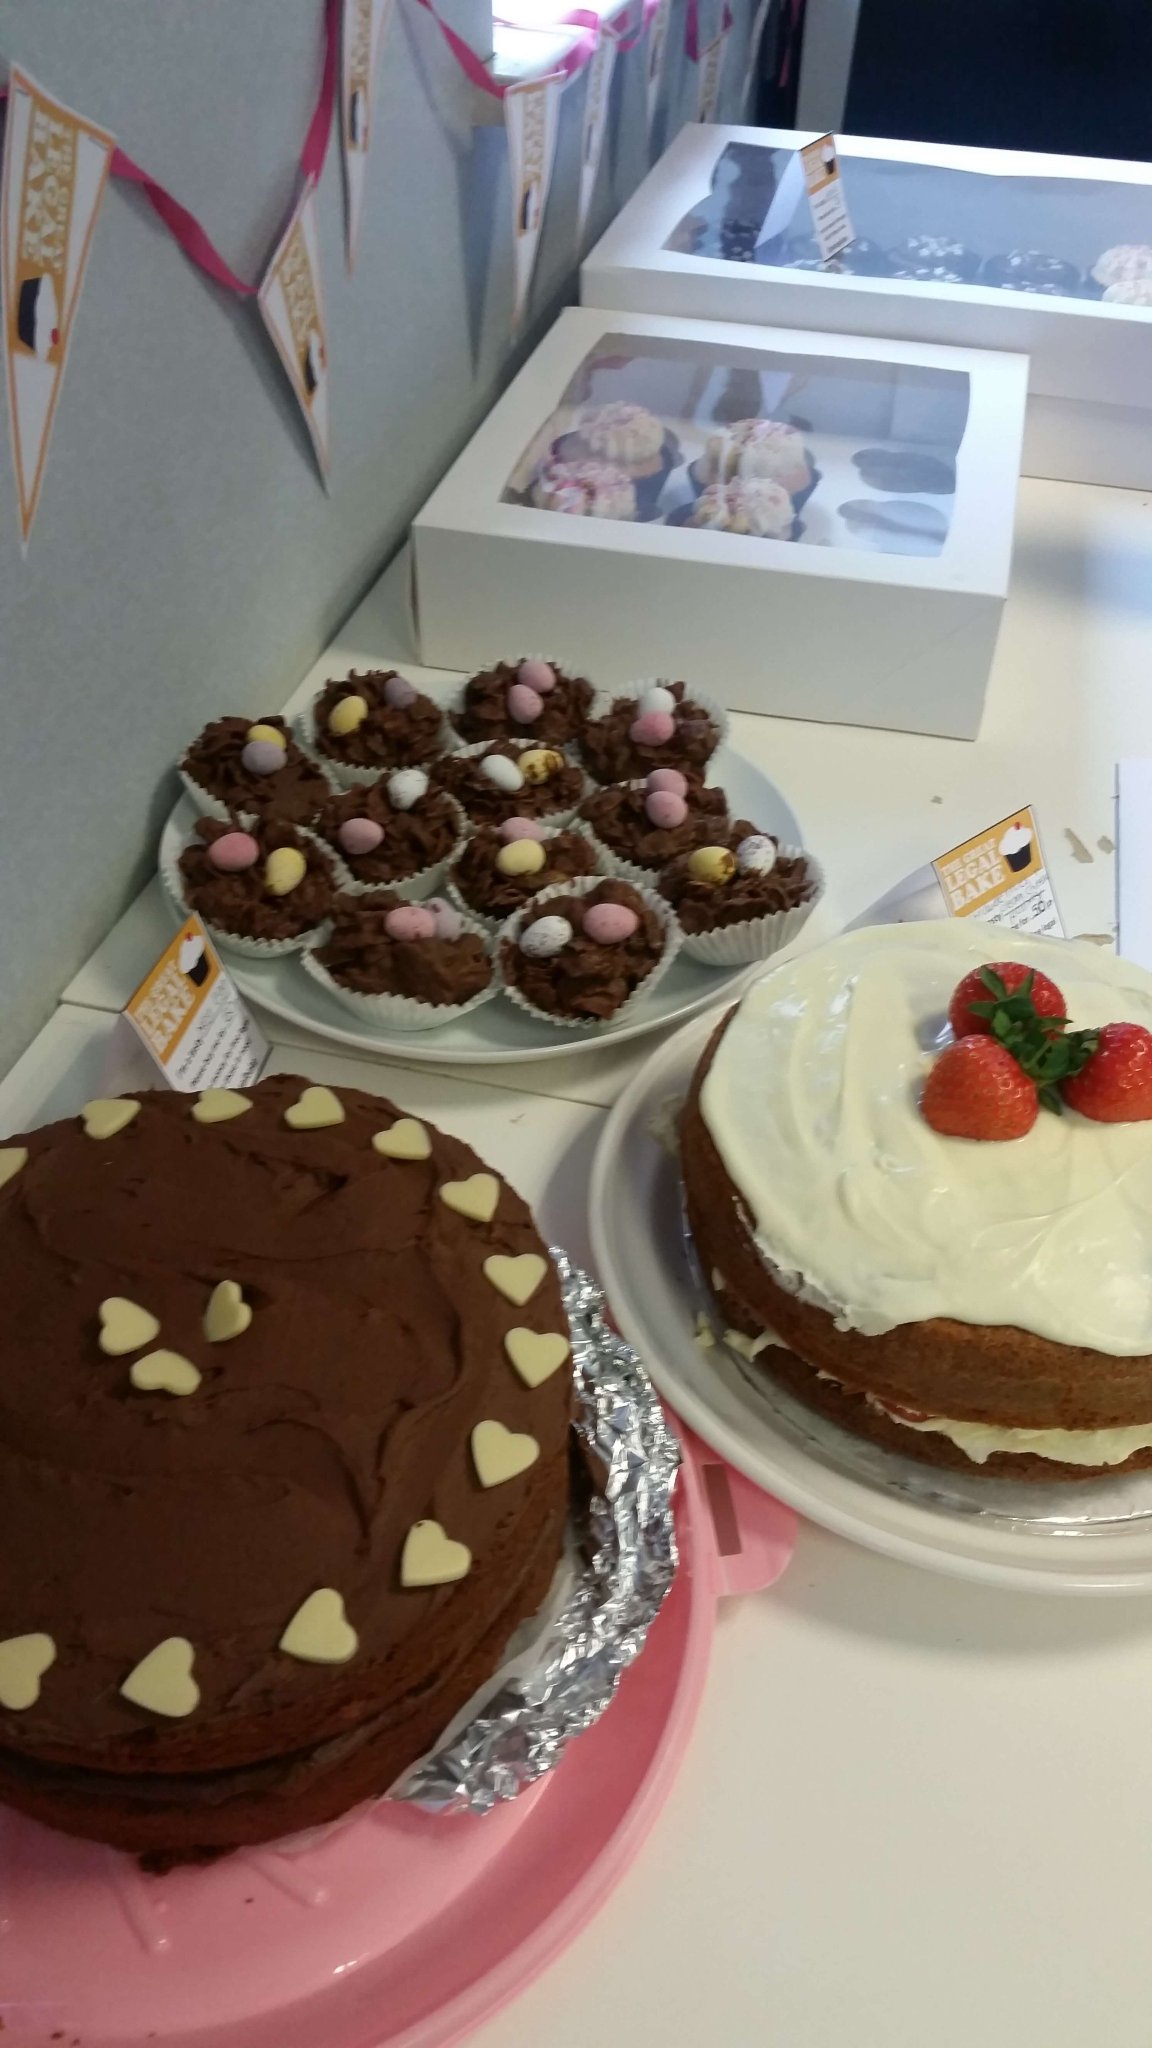 Thank you to our very kind team members for baking some delicious cakes for the #GreatLegalBake today!   #Charity #Fundraising https://t.co/j845qnLsjQ